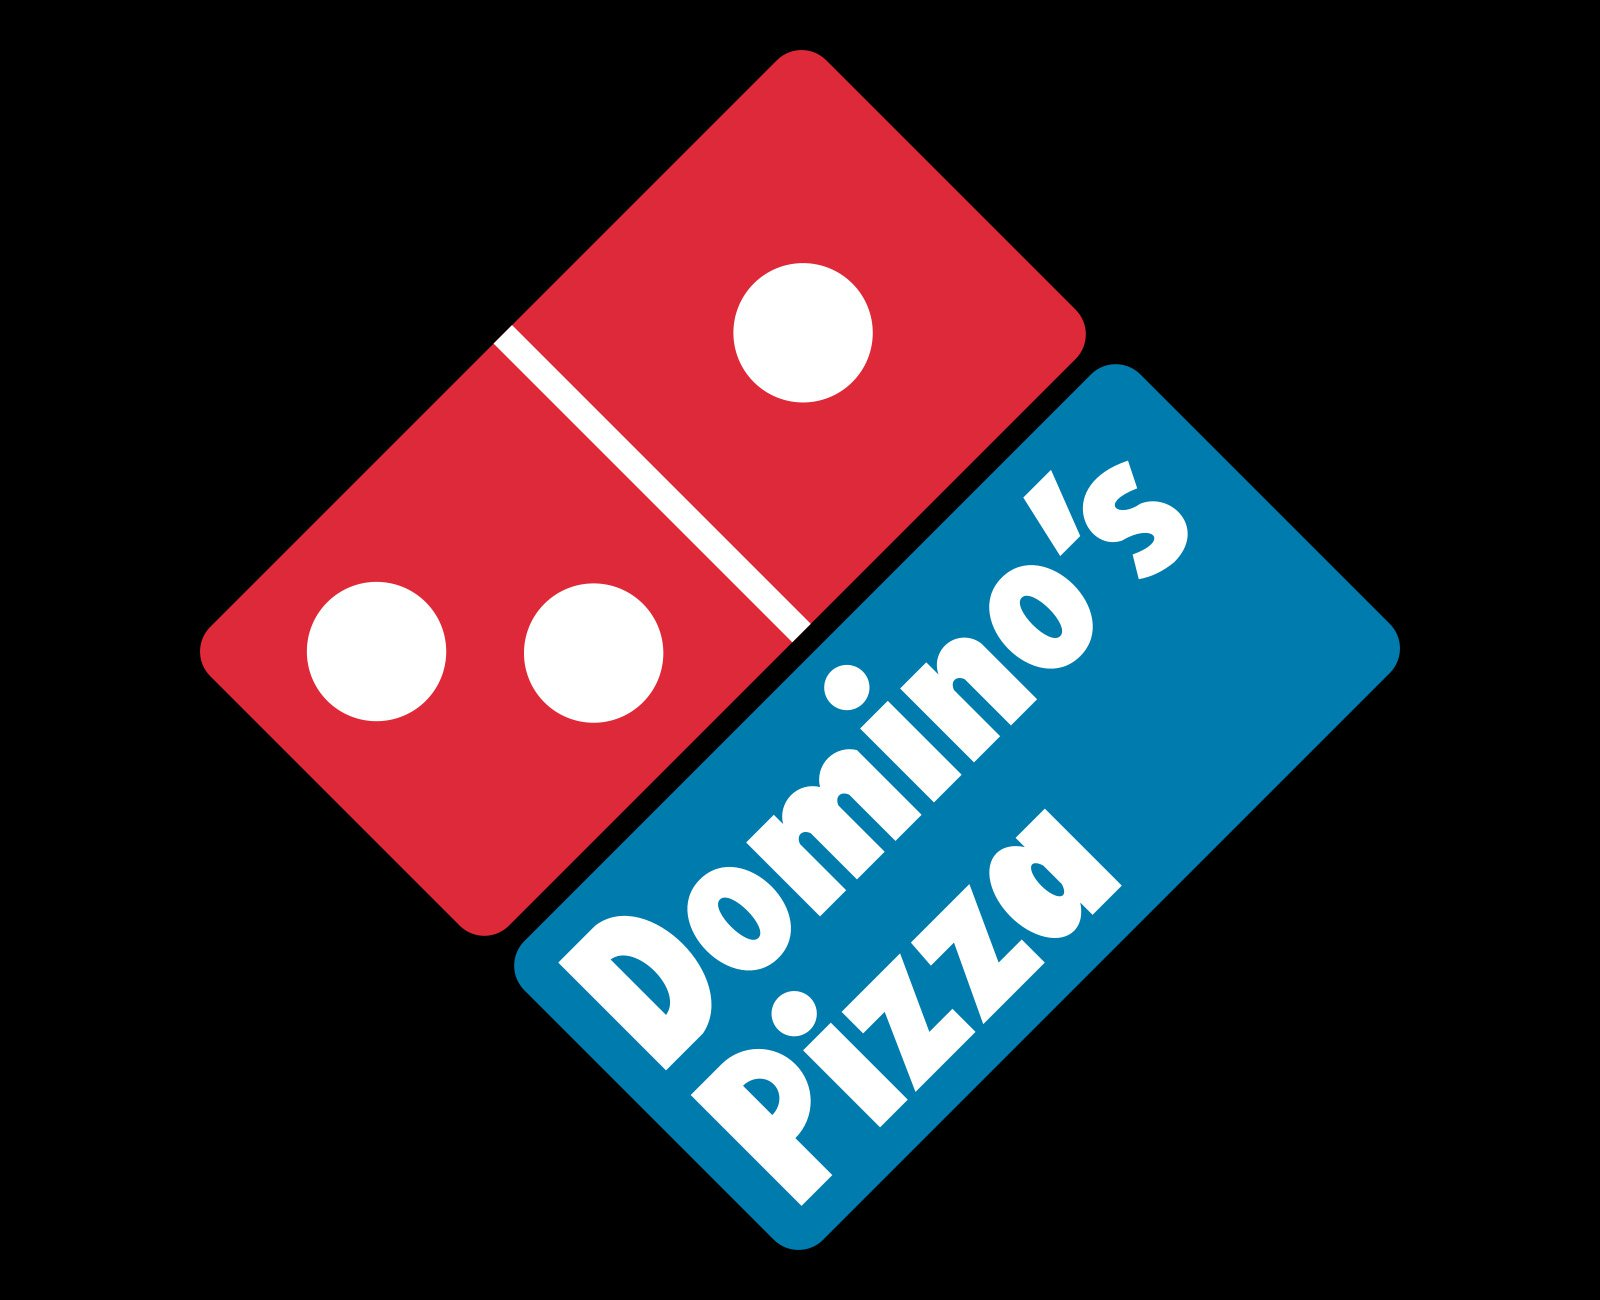 Dominos pizza logo 1001 health care logos for Domino pizza